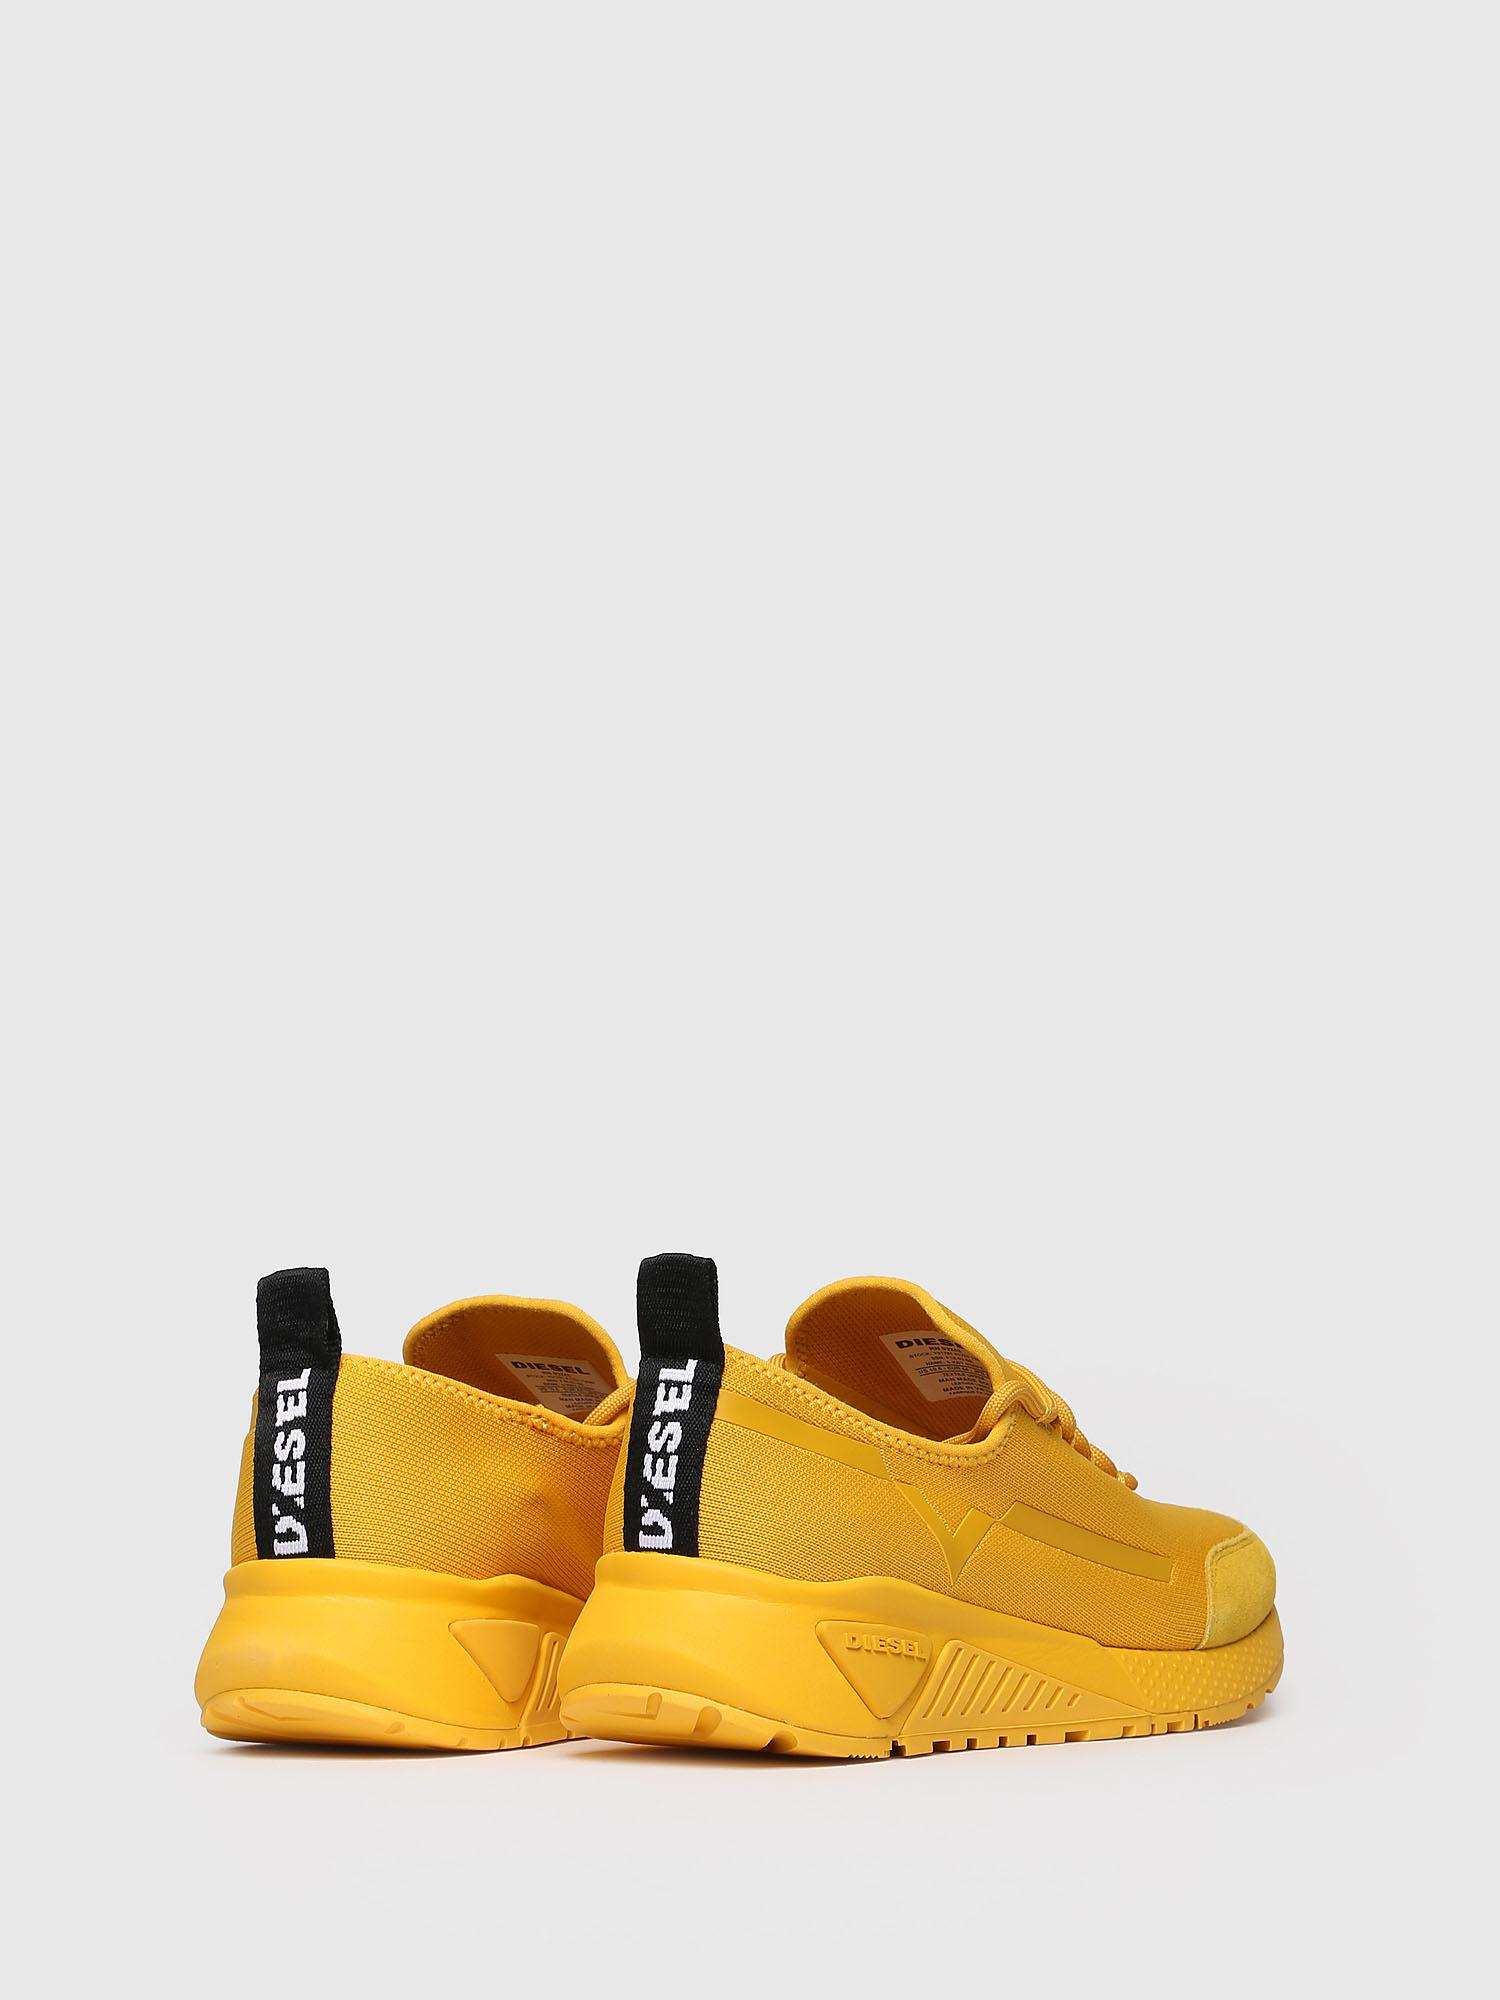 diesel shoes yellow cheapest ac372 3a244